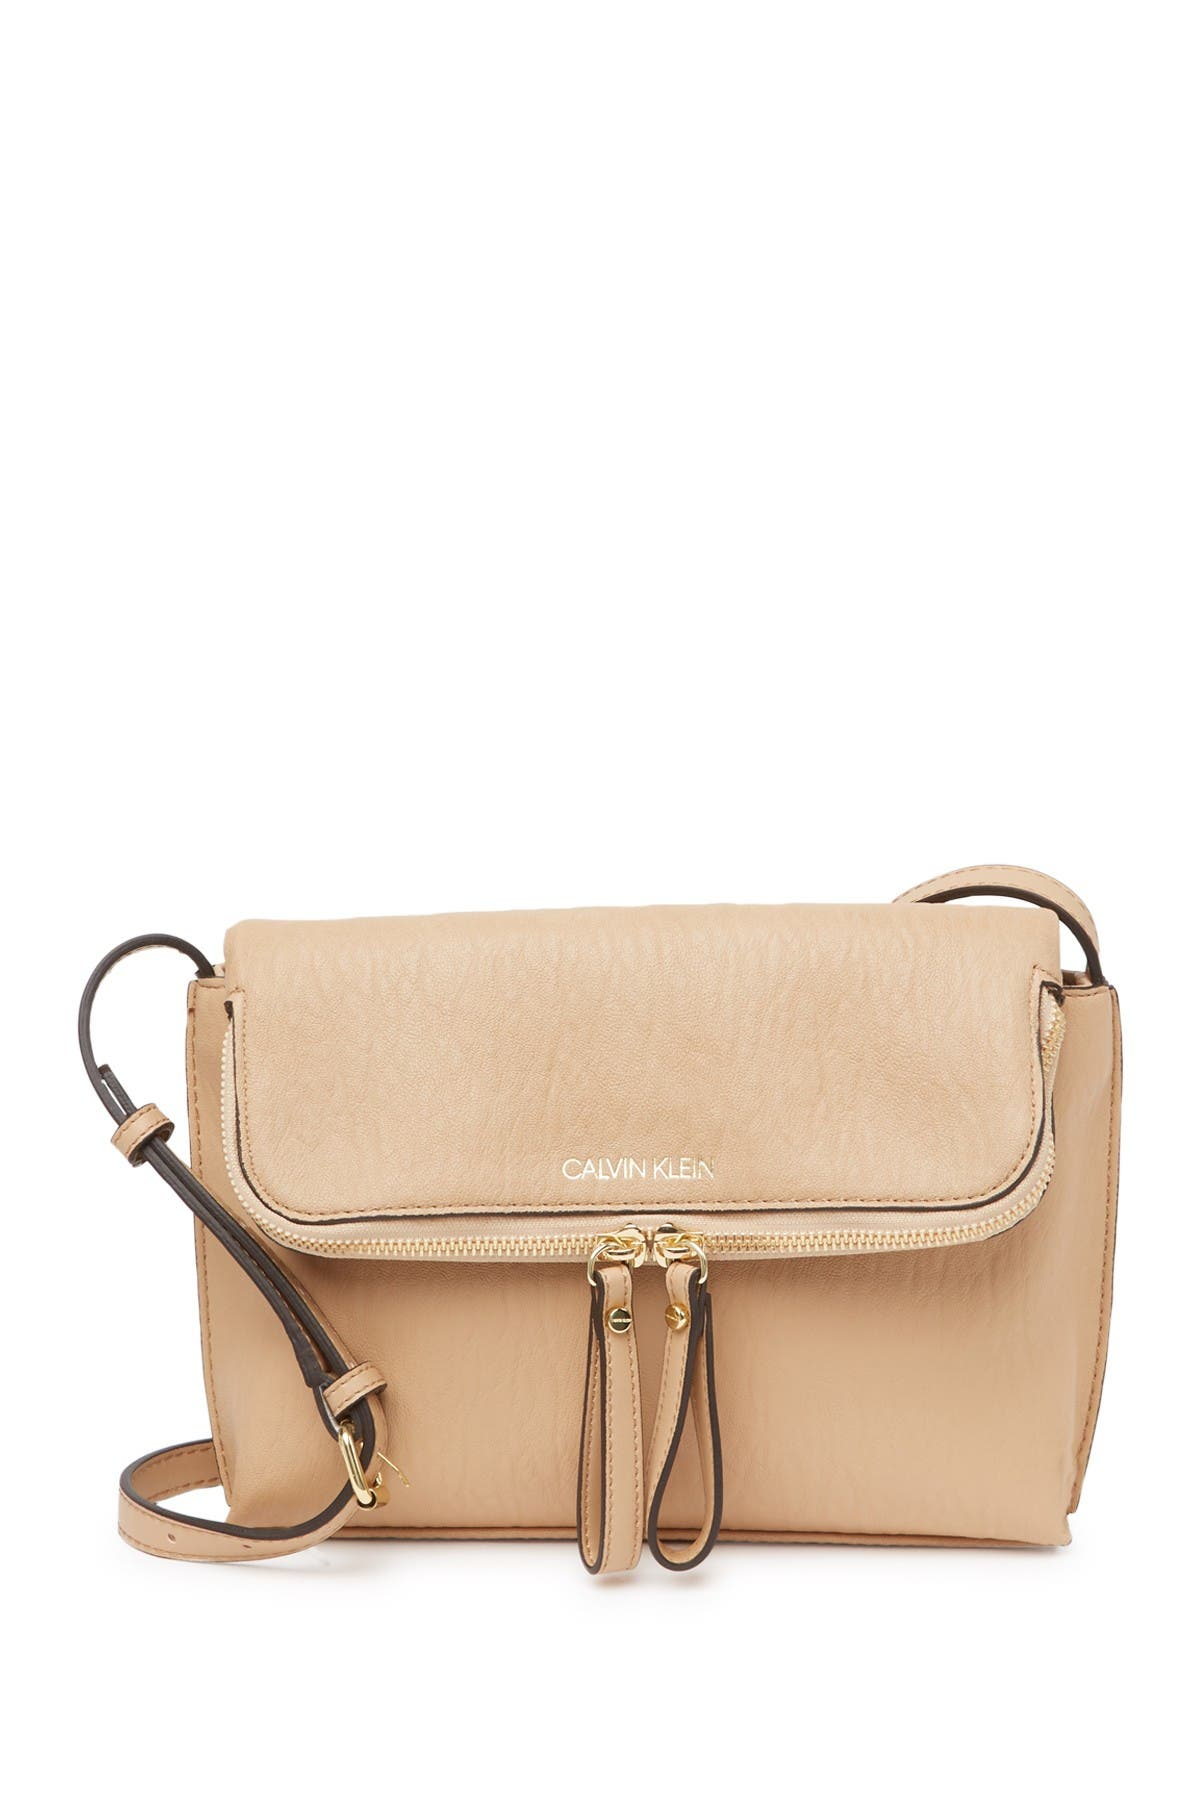 Image of Calvin Klein Elaine Zip Medium Crossbody Bag